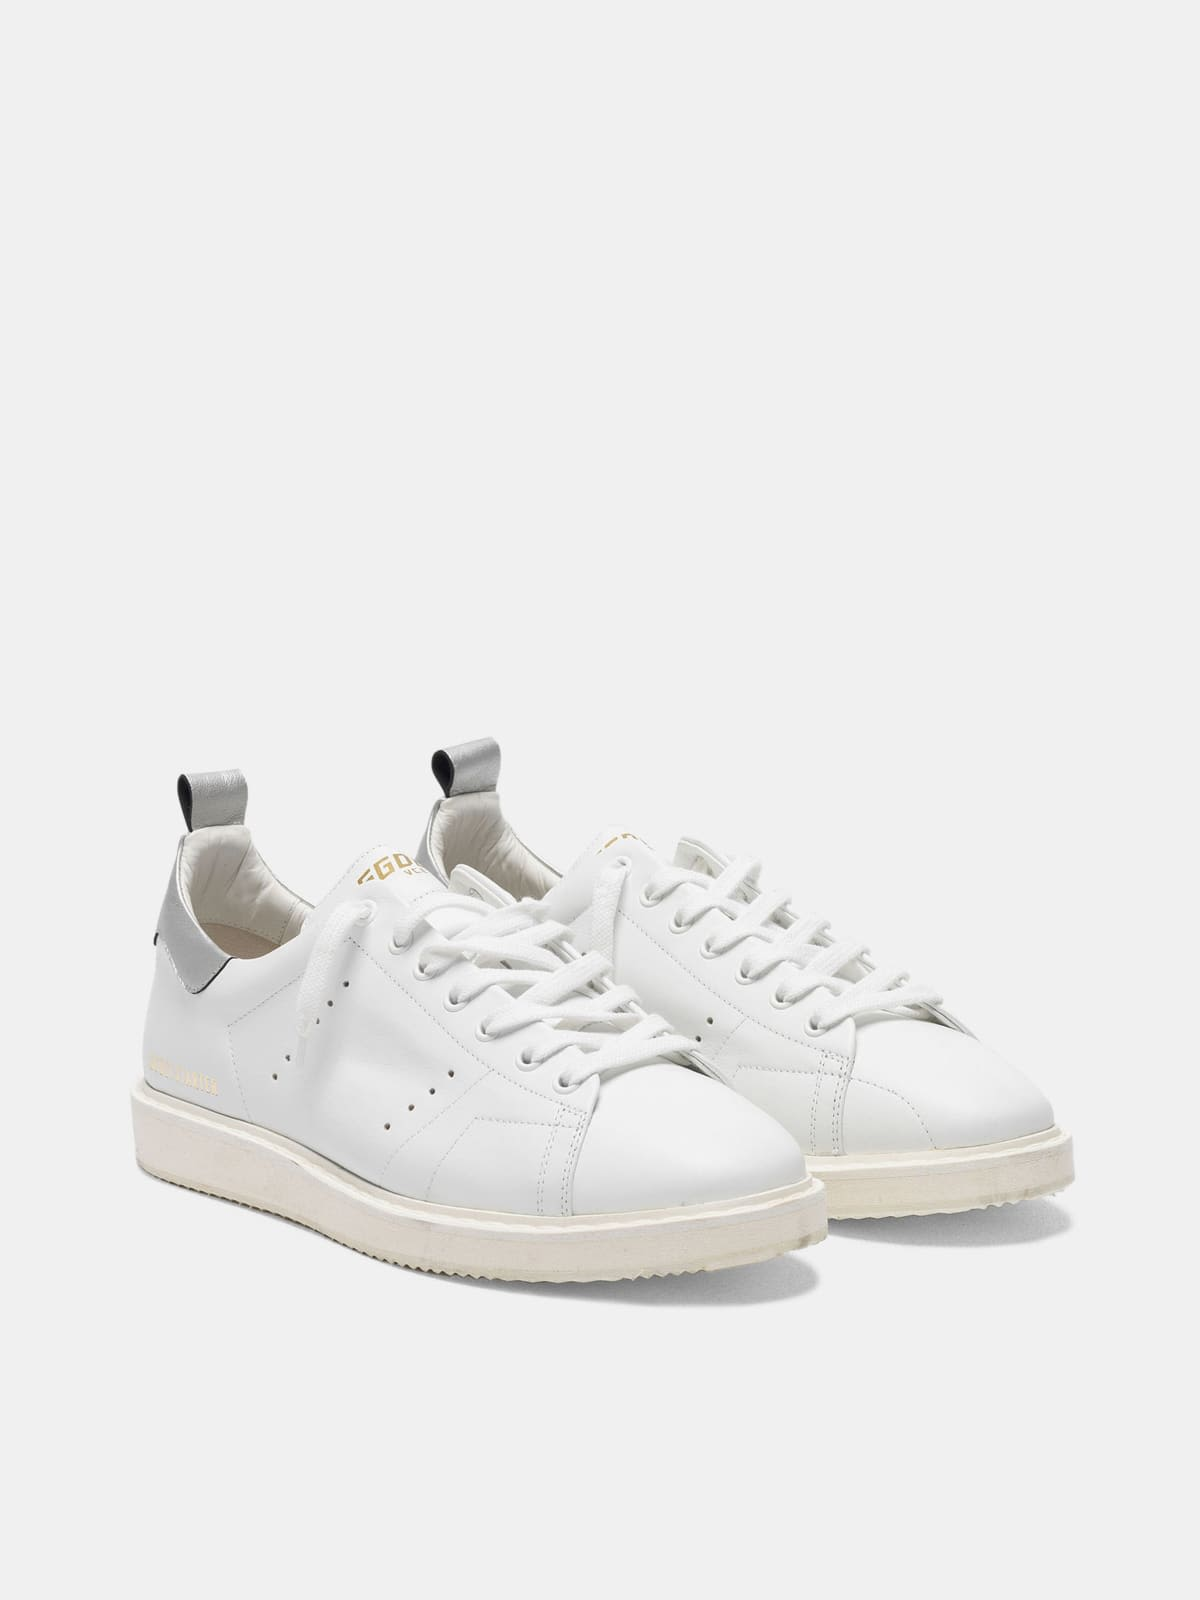 Starter sneakers in leather with metallic heel tab